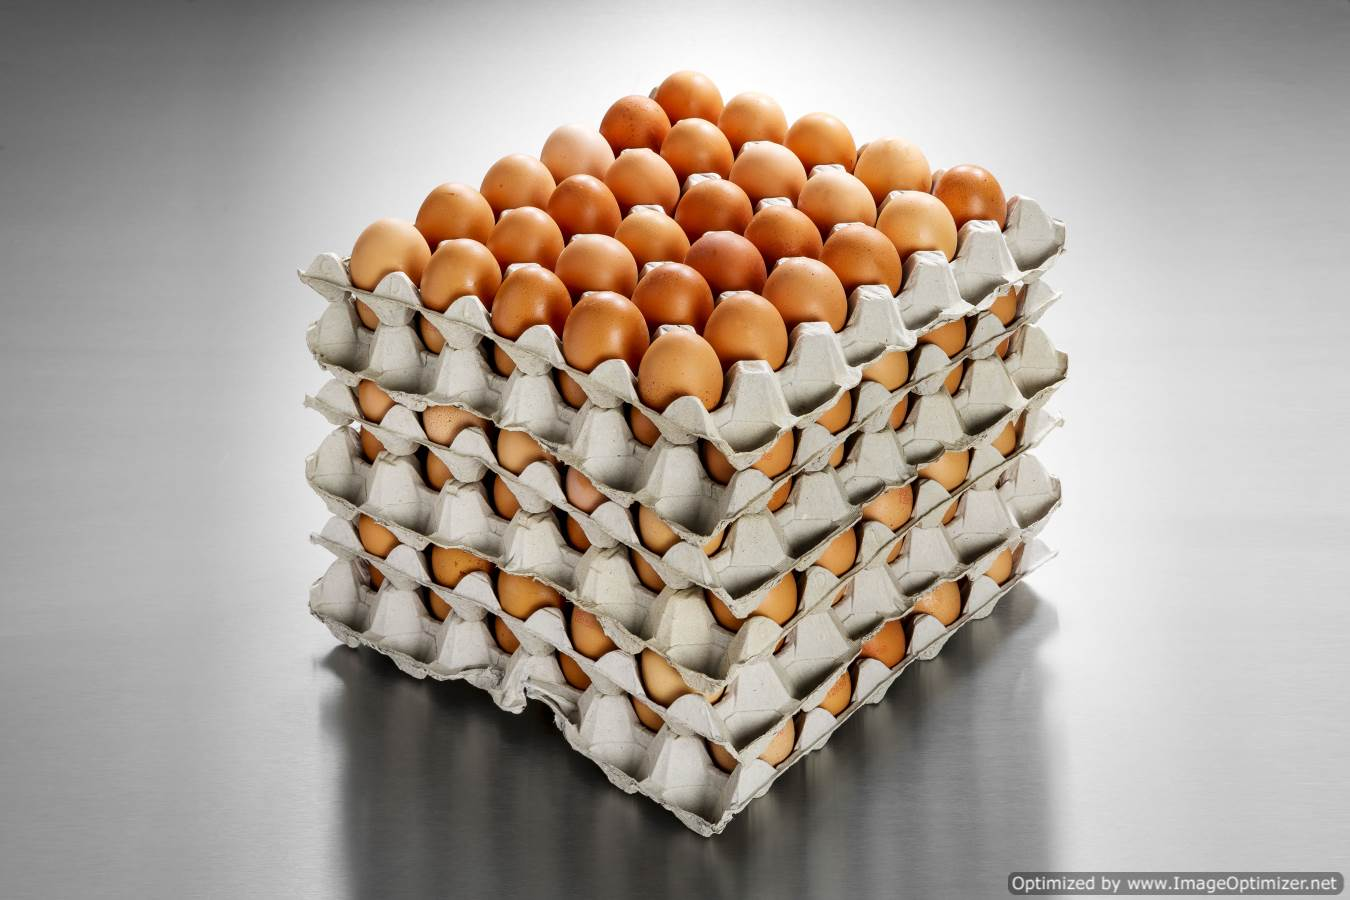 Large Eggs (180 eggs/15 Dozen)